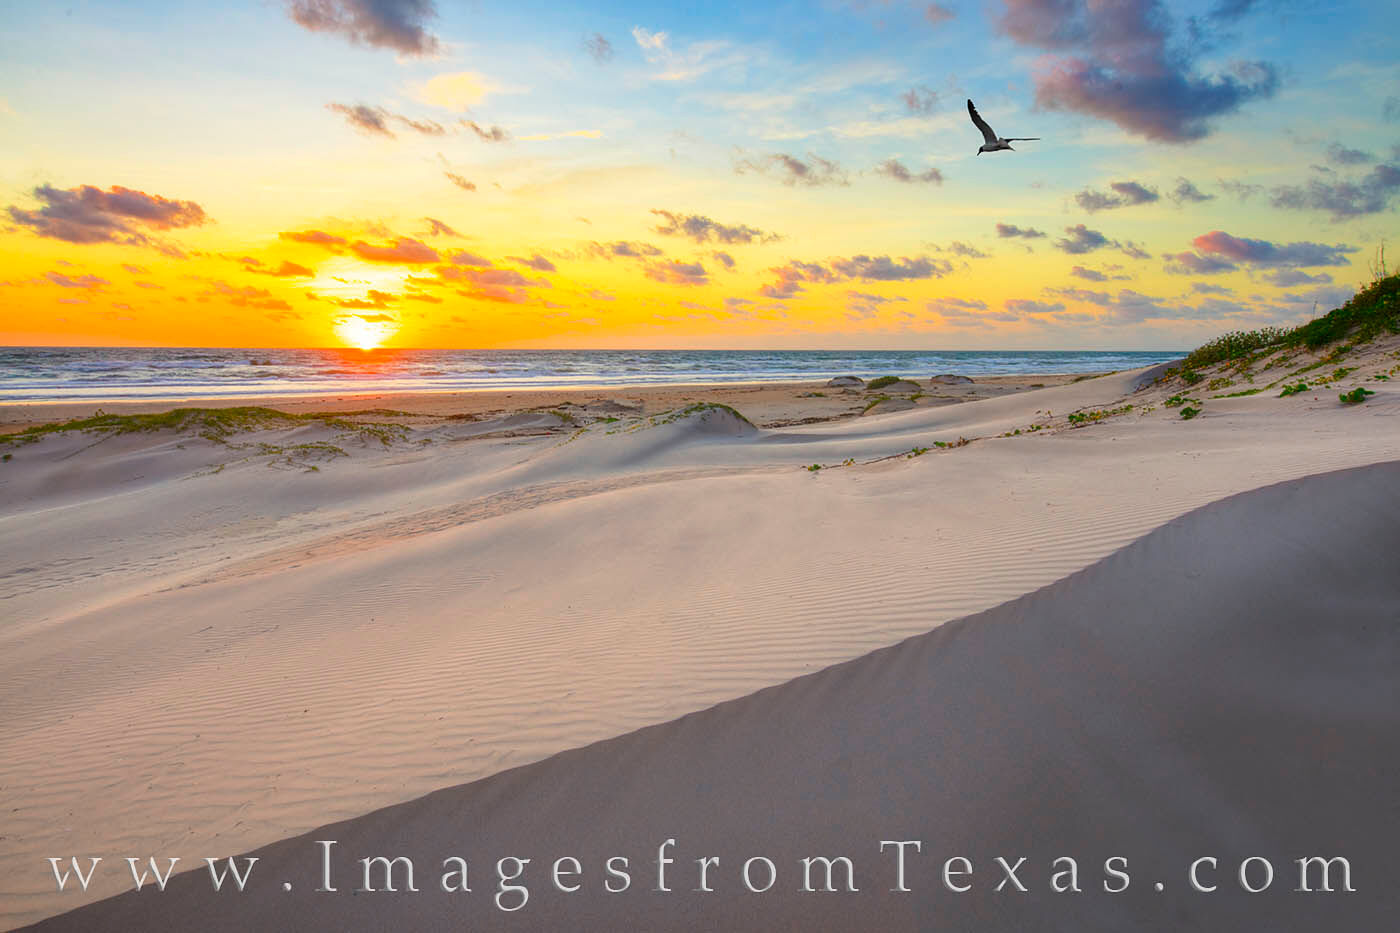 south padre island, texas coast, gulf of mexico, south texas, sand, beach, sand dunes, morning, sunrise, photo